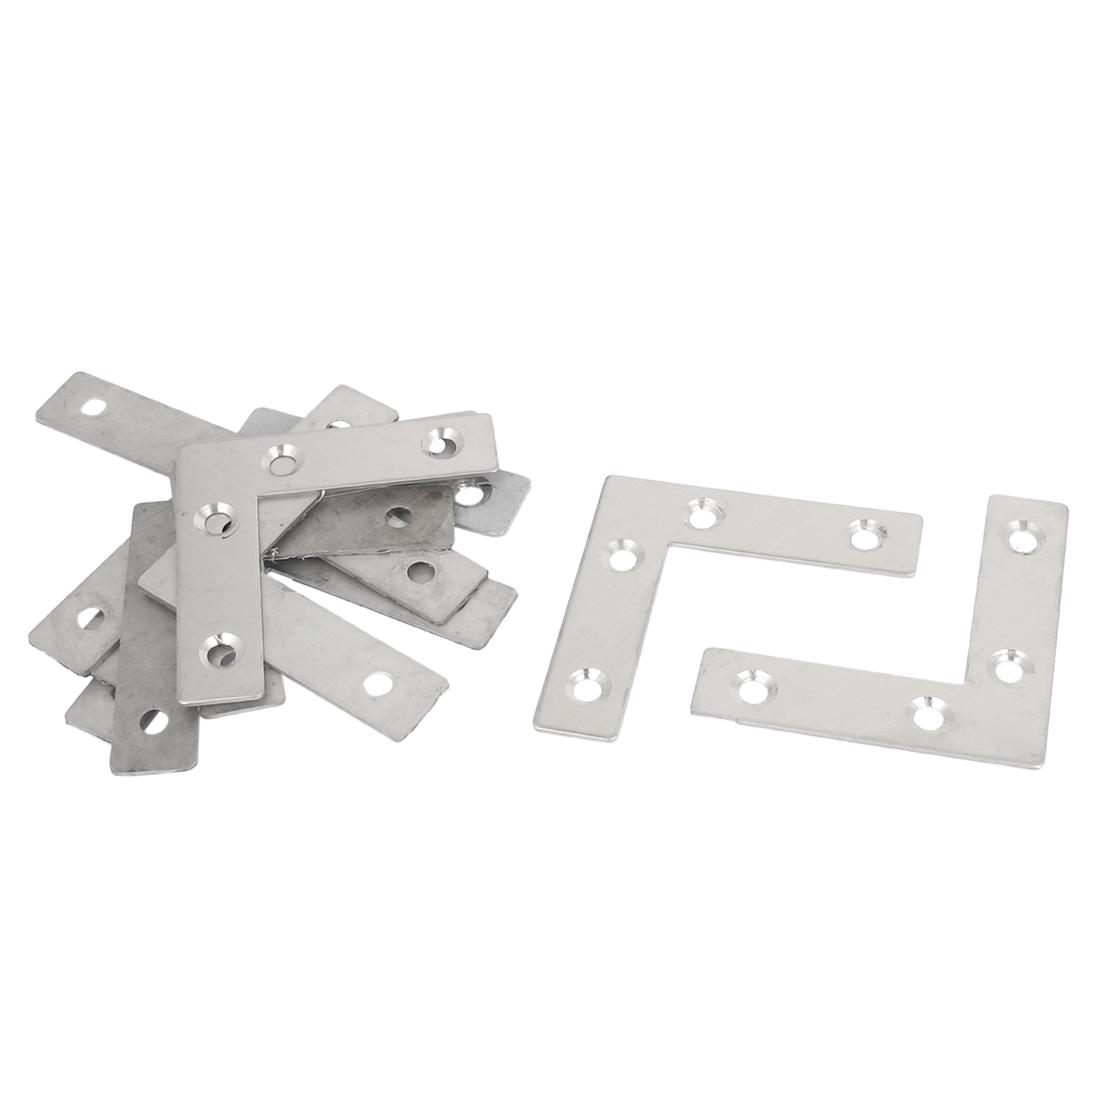 60mmx60mm Flat L Shape Corner Brace Fixing Repair Plate Right Angle Bracket 10pcs